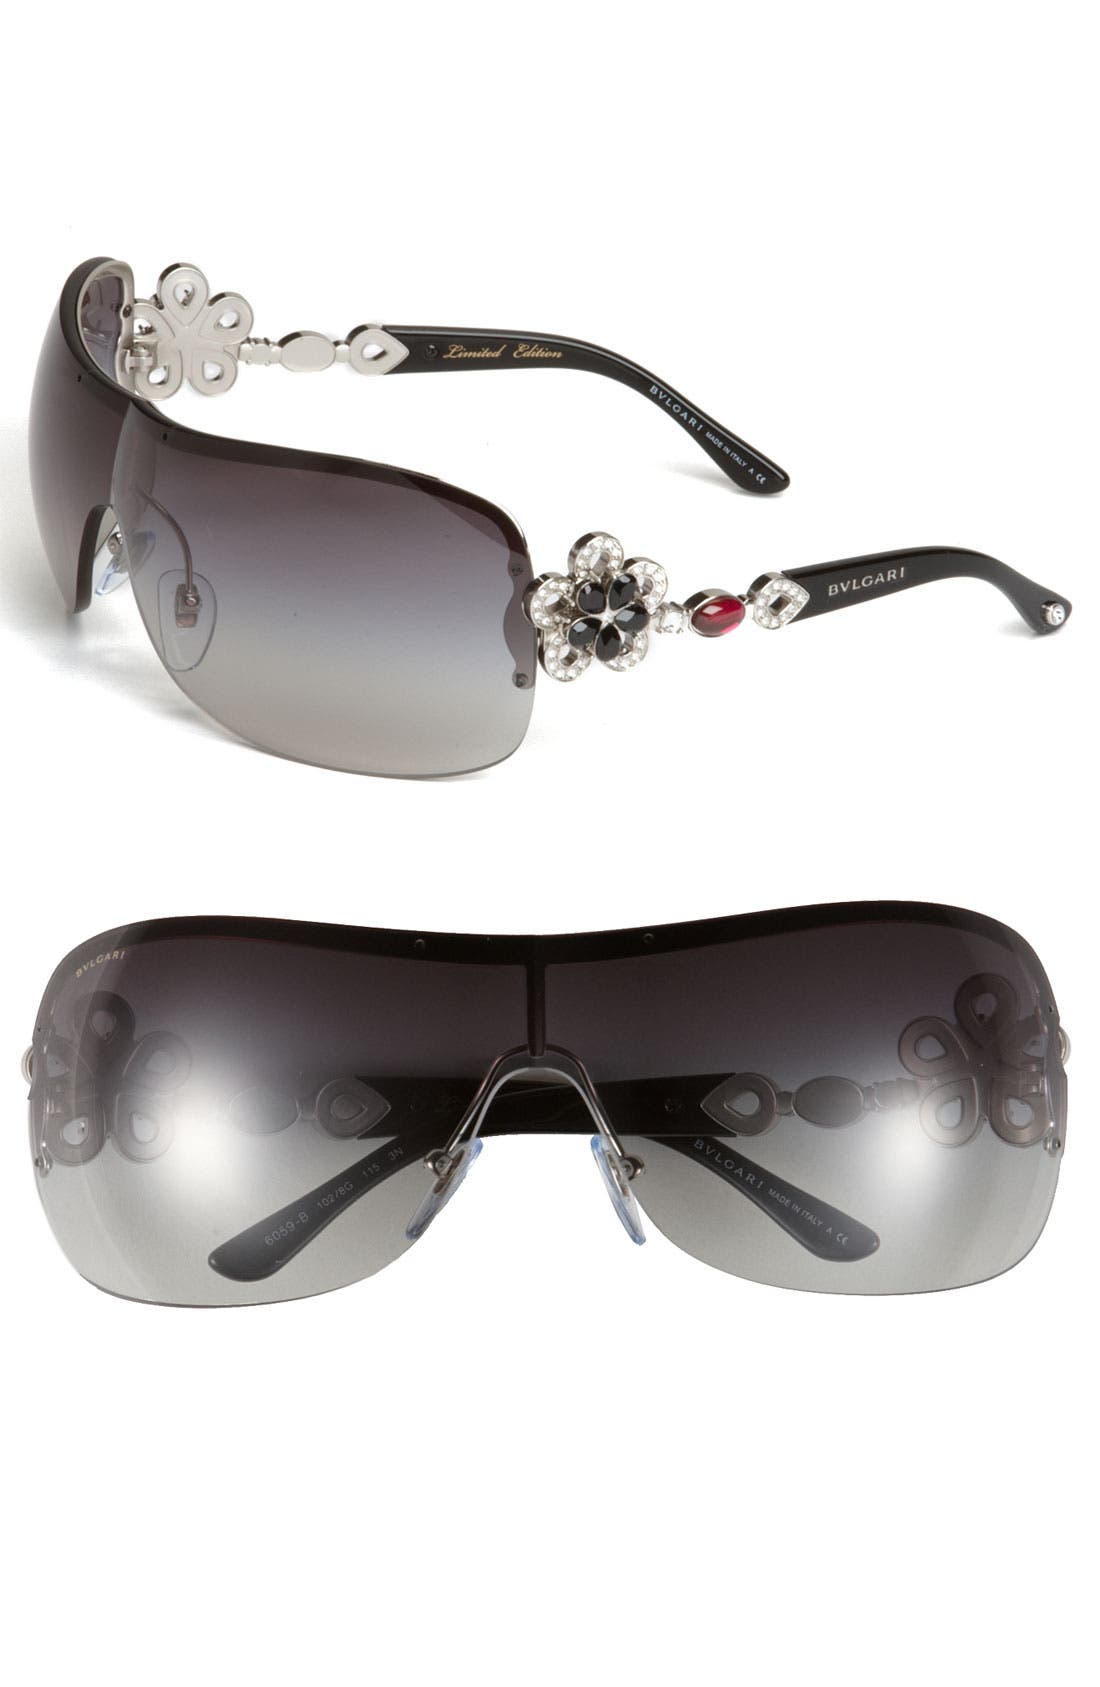 Main Image - BVLGARI 63mm Crystal Temple Rimless Shield Sunglasses